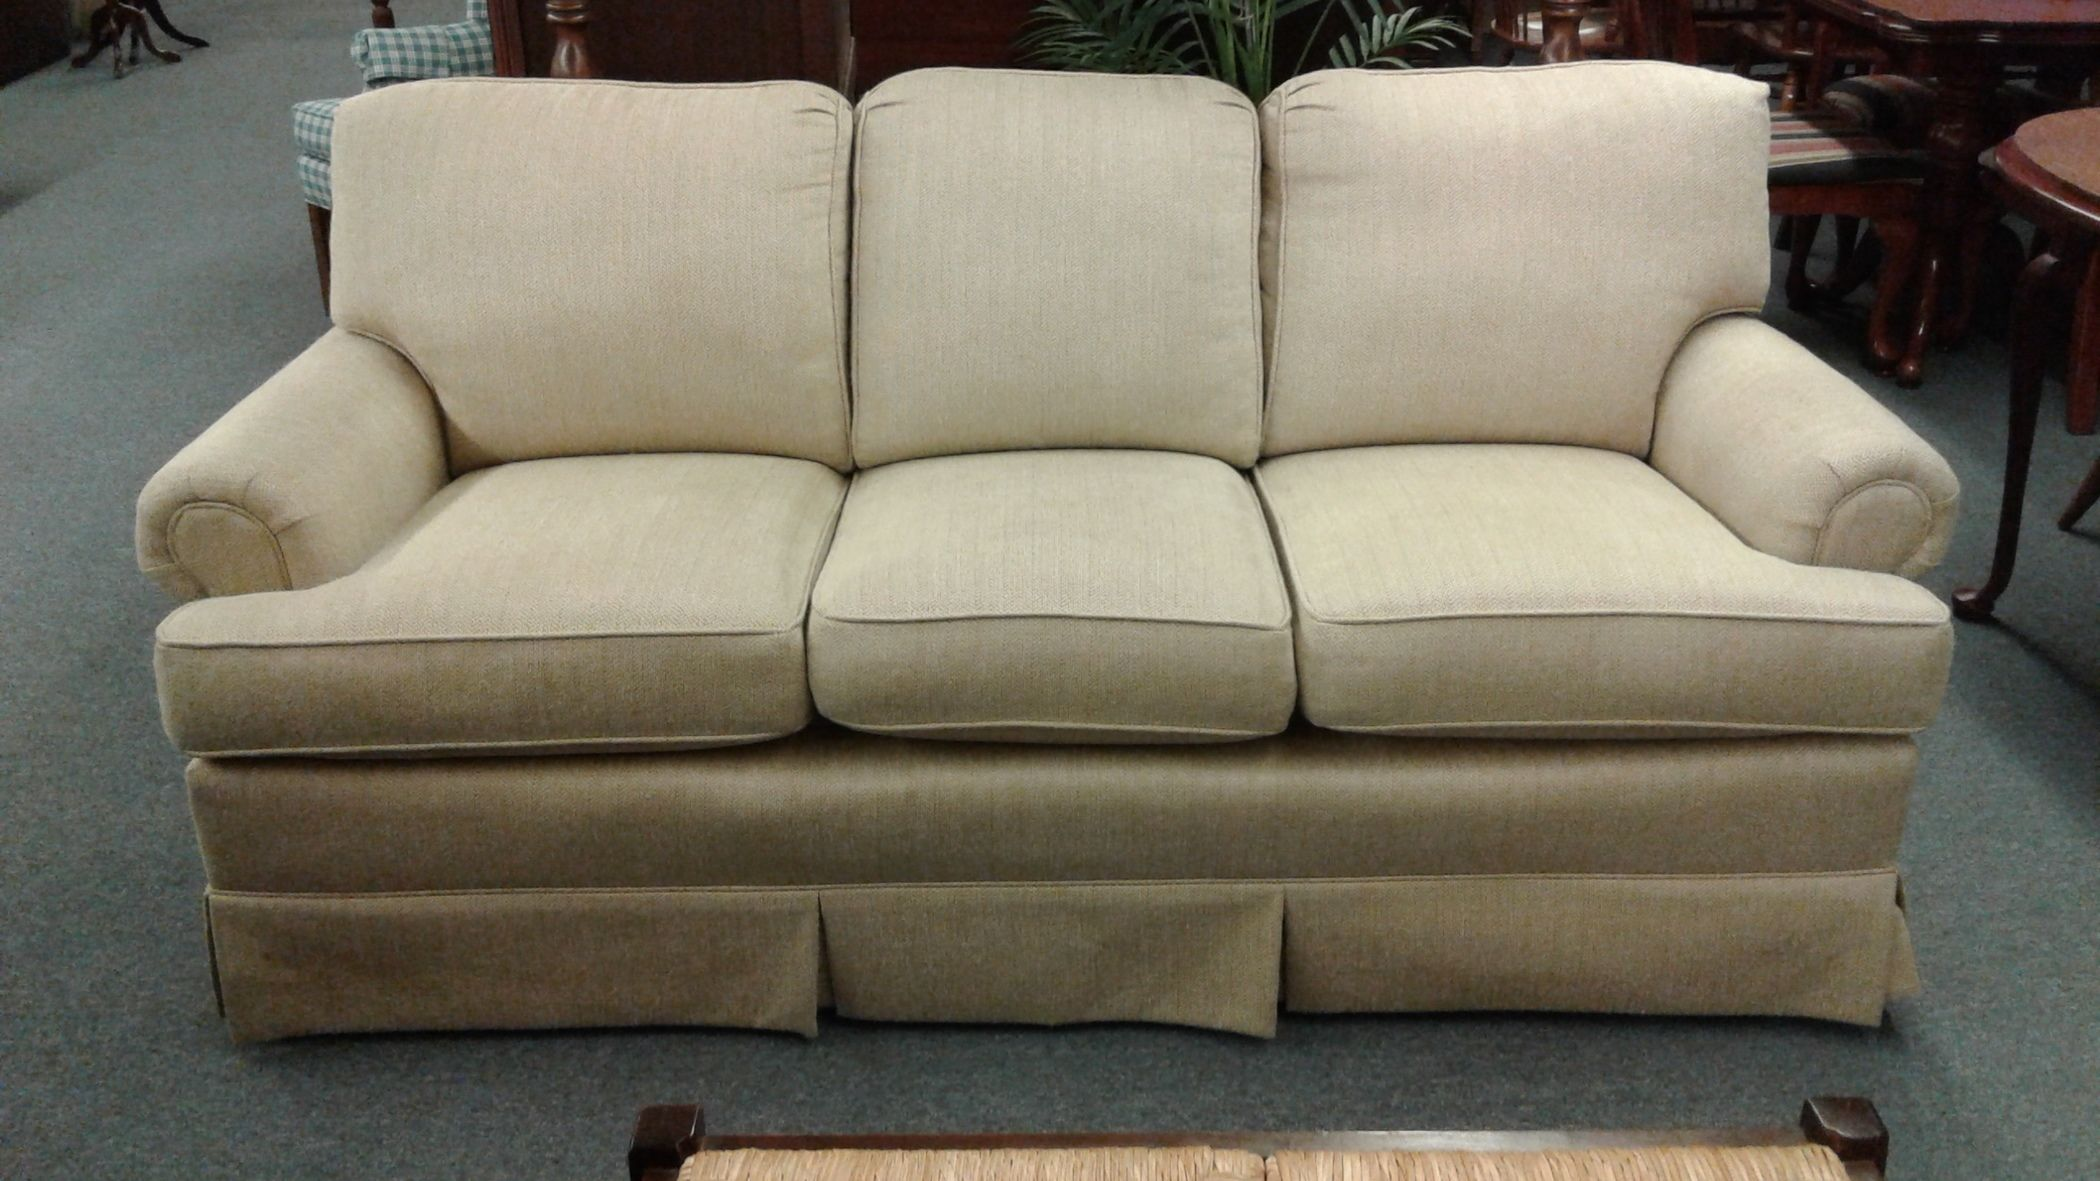 Delmarva Furniture Consignment